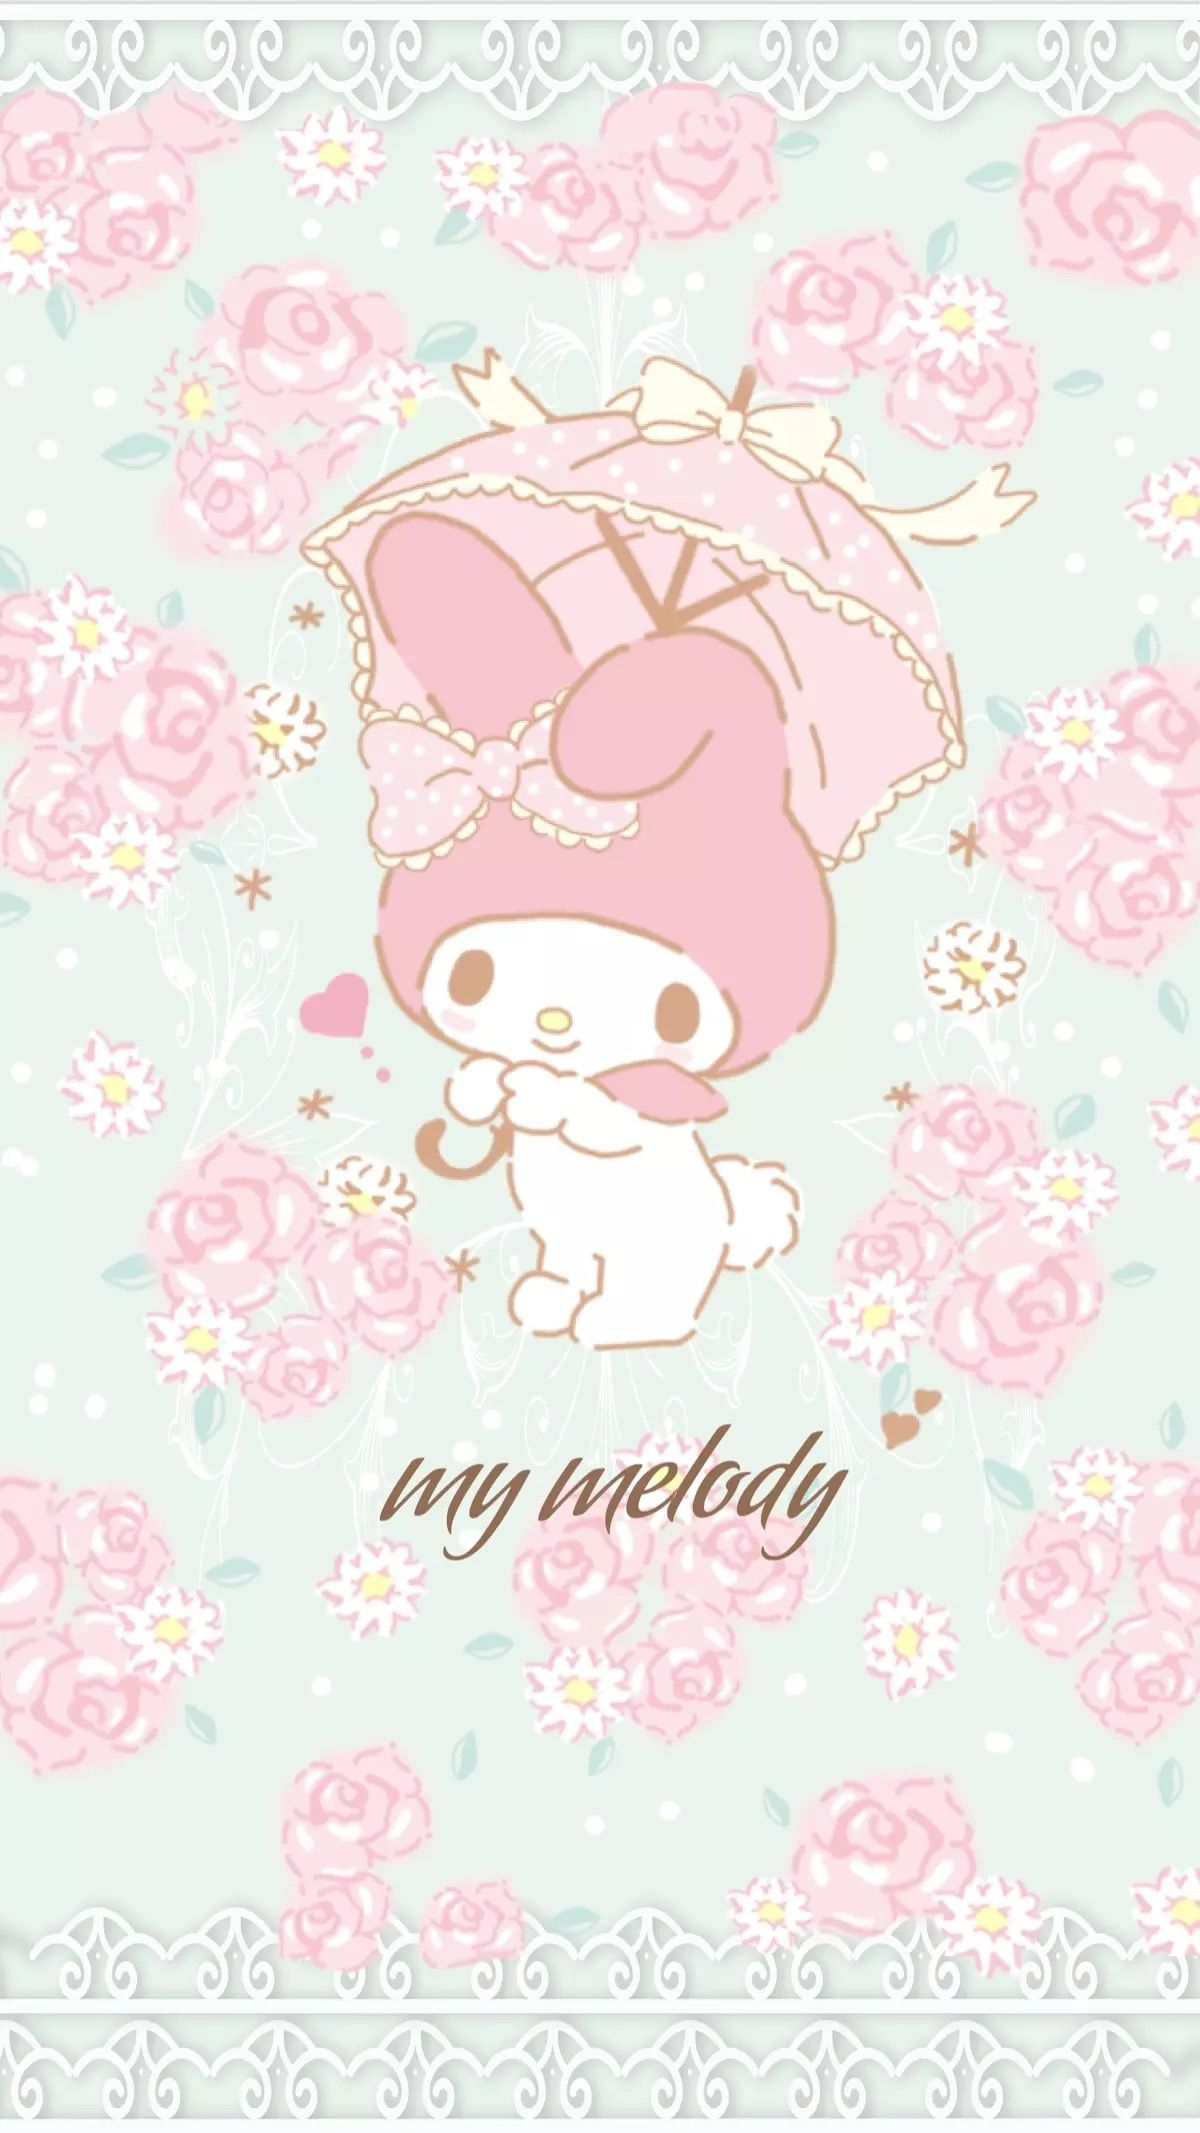 My melody wallpaper image by Giok Lien on Gambar lucu ...